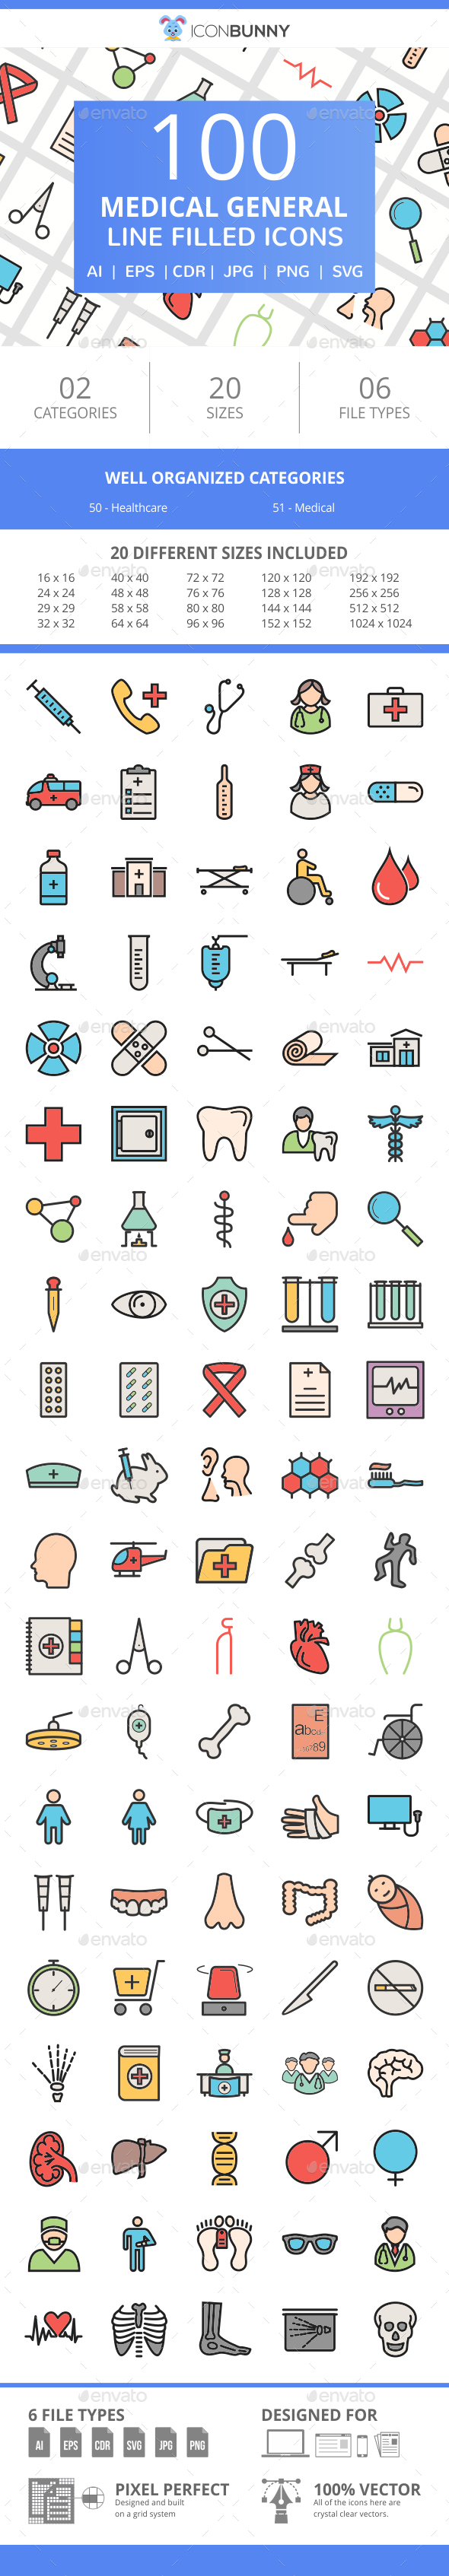 101 Medical General Filled Line Icons - Icons